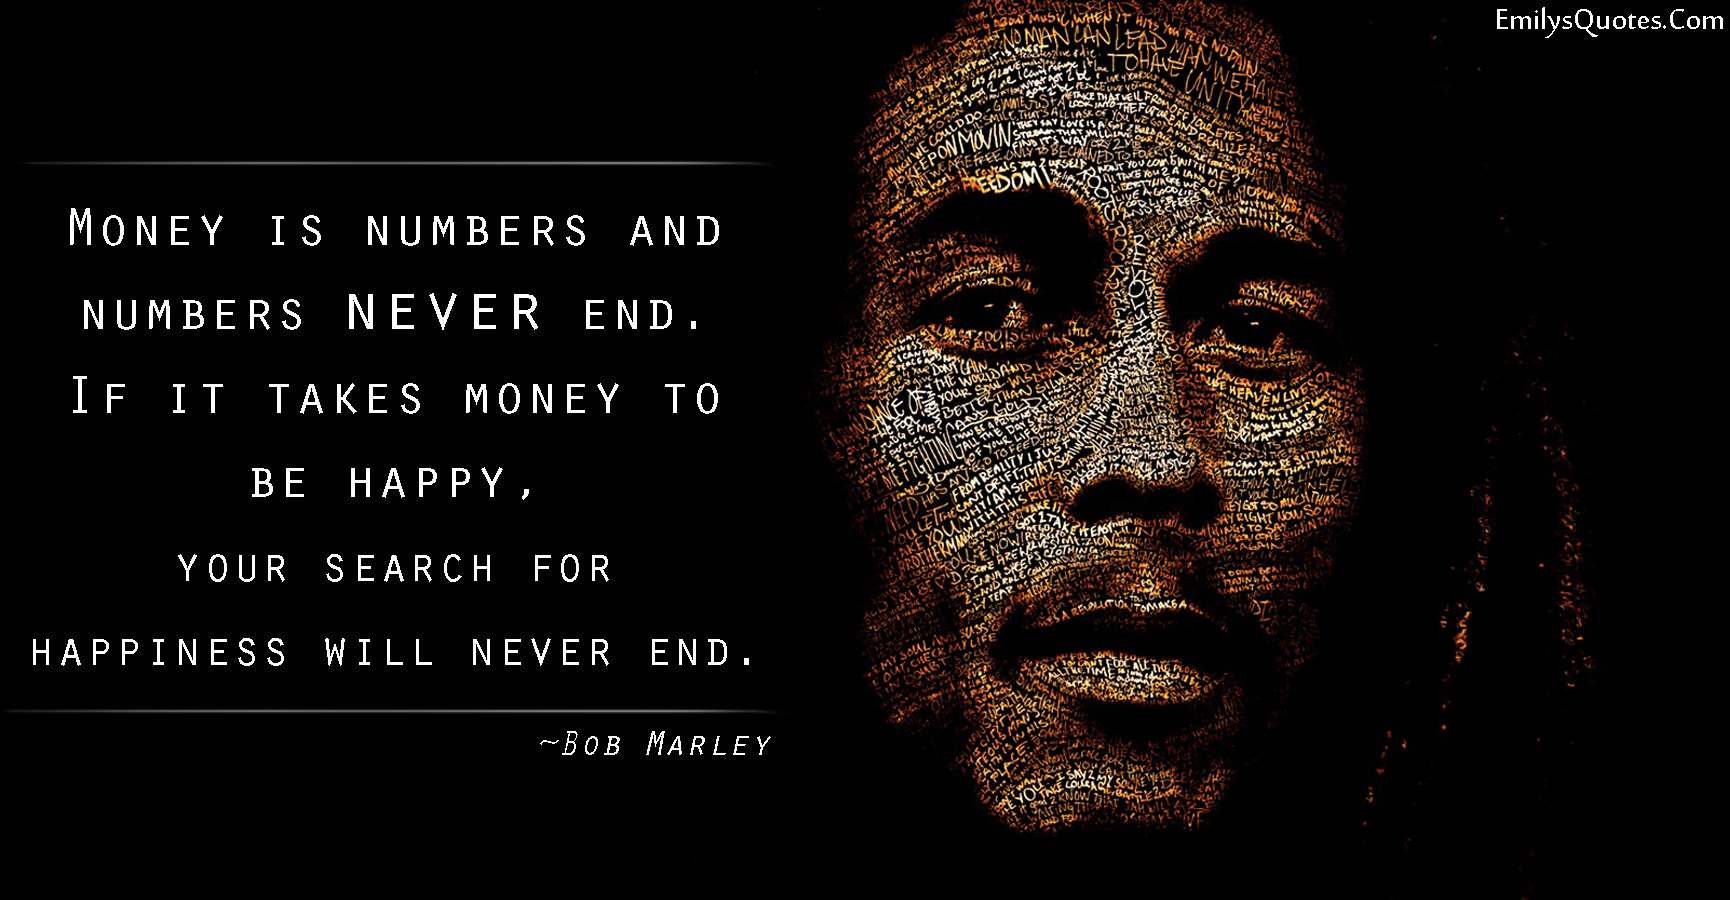 EmilysQuotes.Com - amazing, great, wisdom, money, happiness, mistake, numbers, Bob Marley